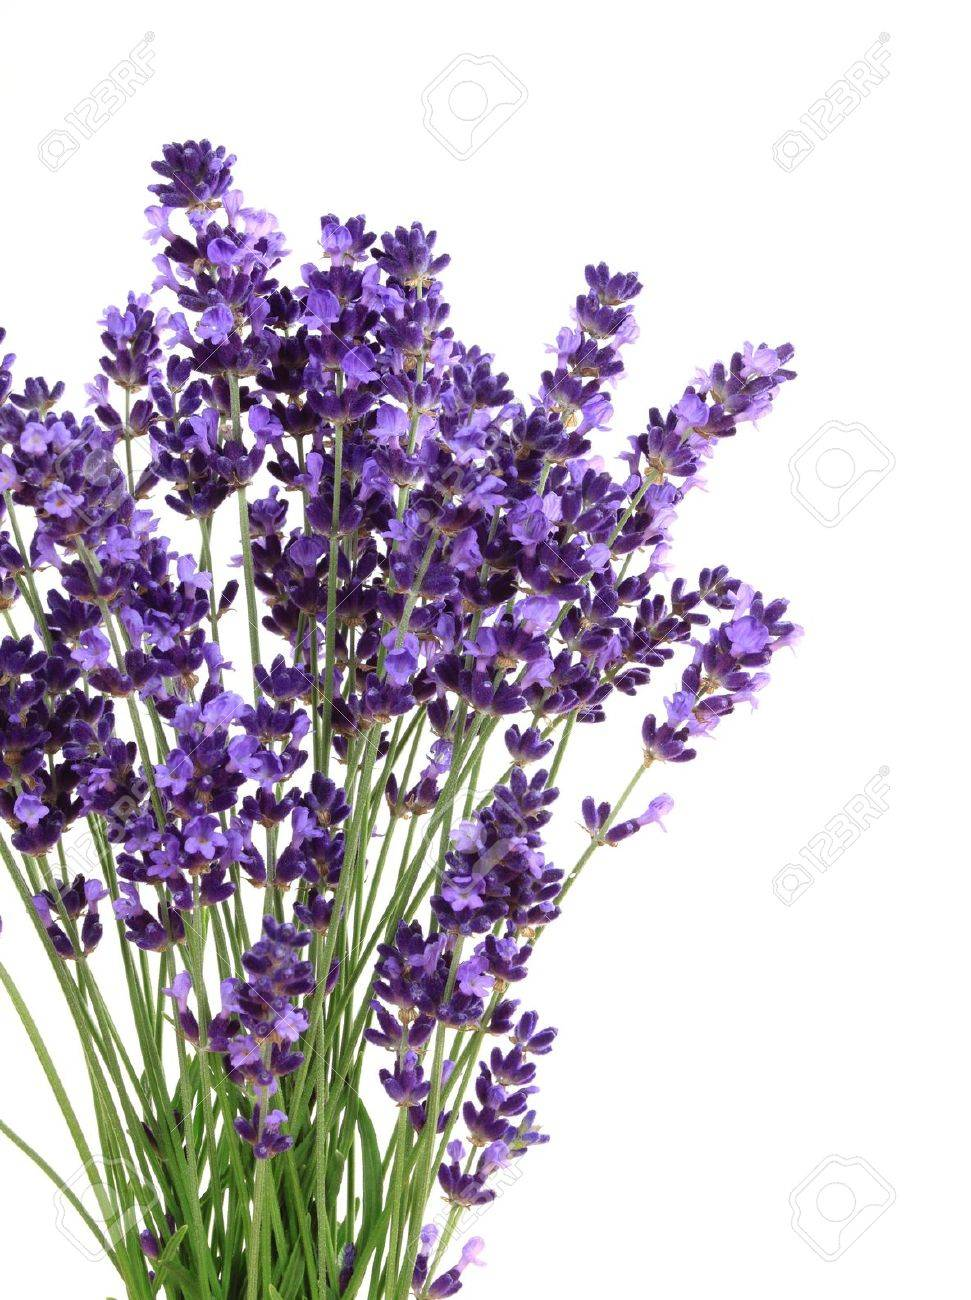 Lavender flowers against white background. Isolated object. - 14245119